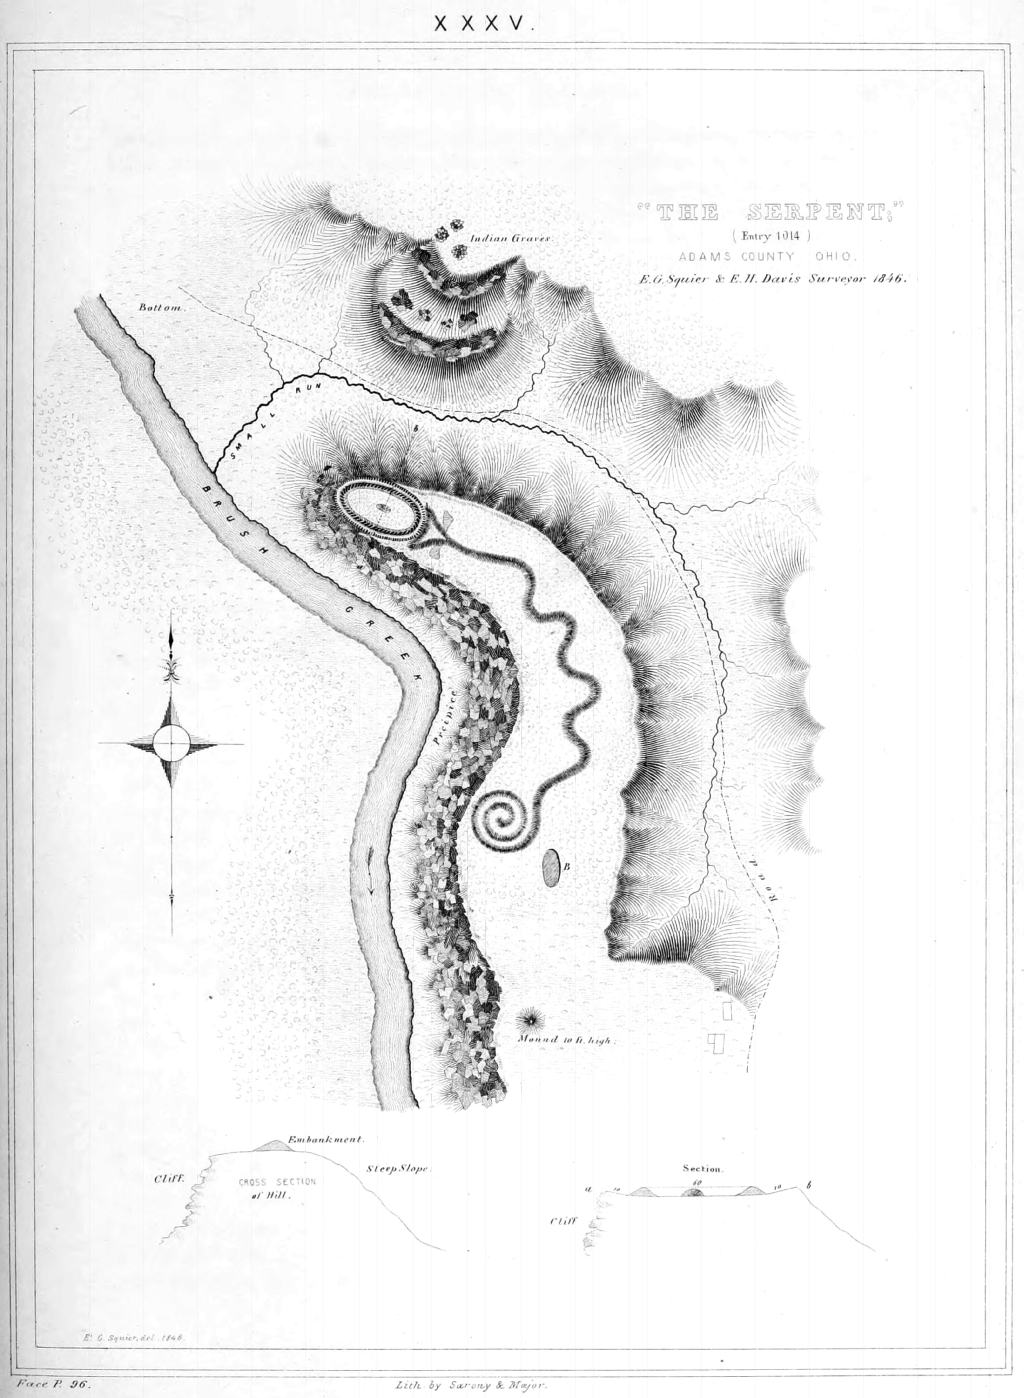 Great Serpent in Adams County, Ohio, Plate XXXV from  Ancient Monuments of the Mississippi Valley,  1848. Image Source:   SD35 Serpent Mound Squier and Davis Plate XXXV gray-levels-cropped.png  (derived from   Ancient Monuments of the Mississippi Valley  , published by the  Smithsonian Institution , 1848) by Ephraim George Squier and Edwin Hamilton Davis is licensed under  Public Domain Mark 1.0